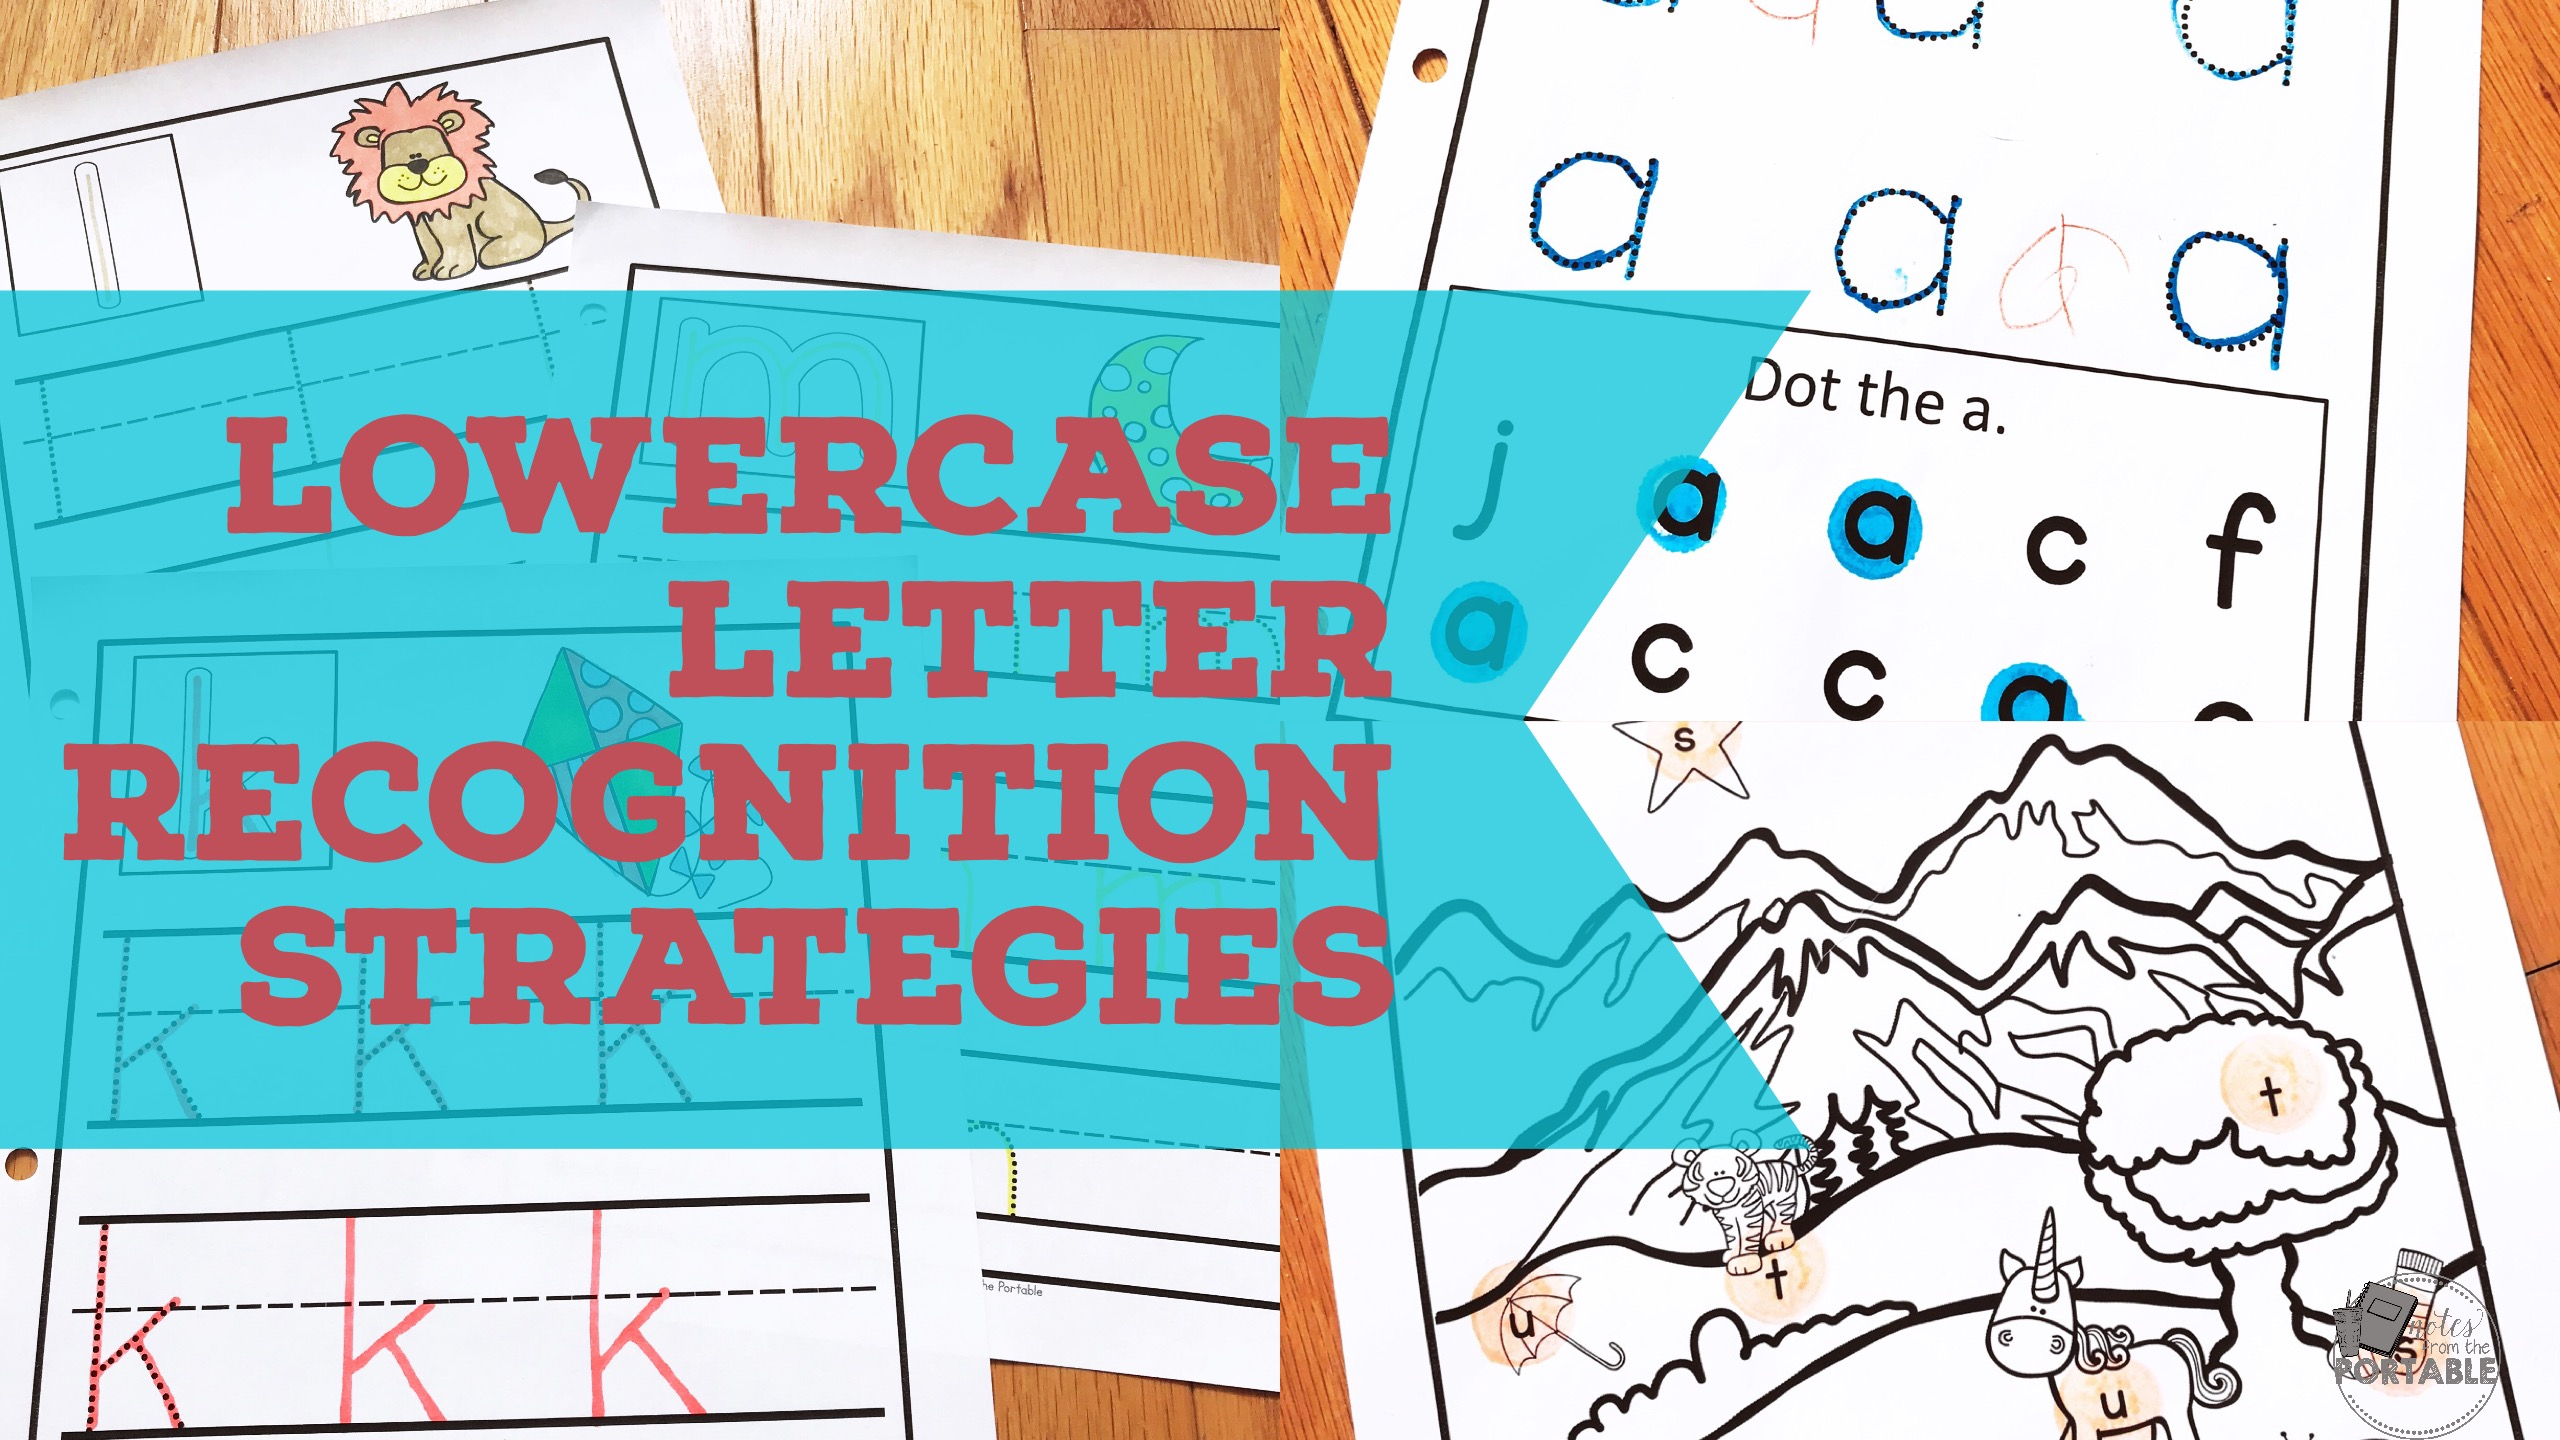 Lowercase Letter Recognition strategies for young readers.